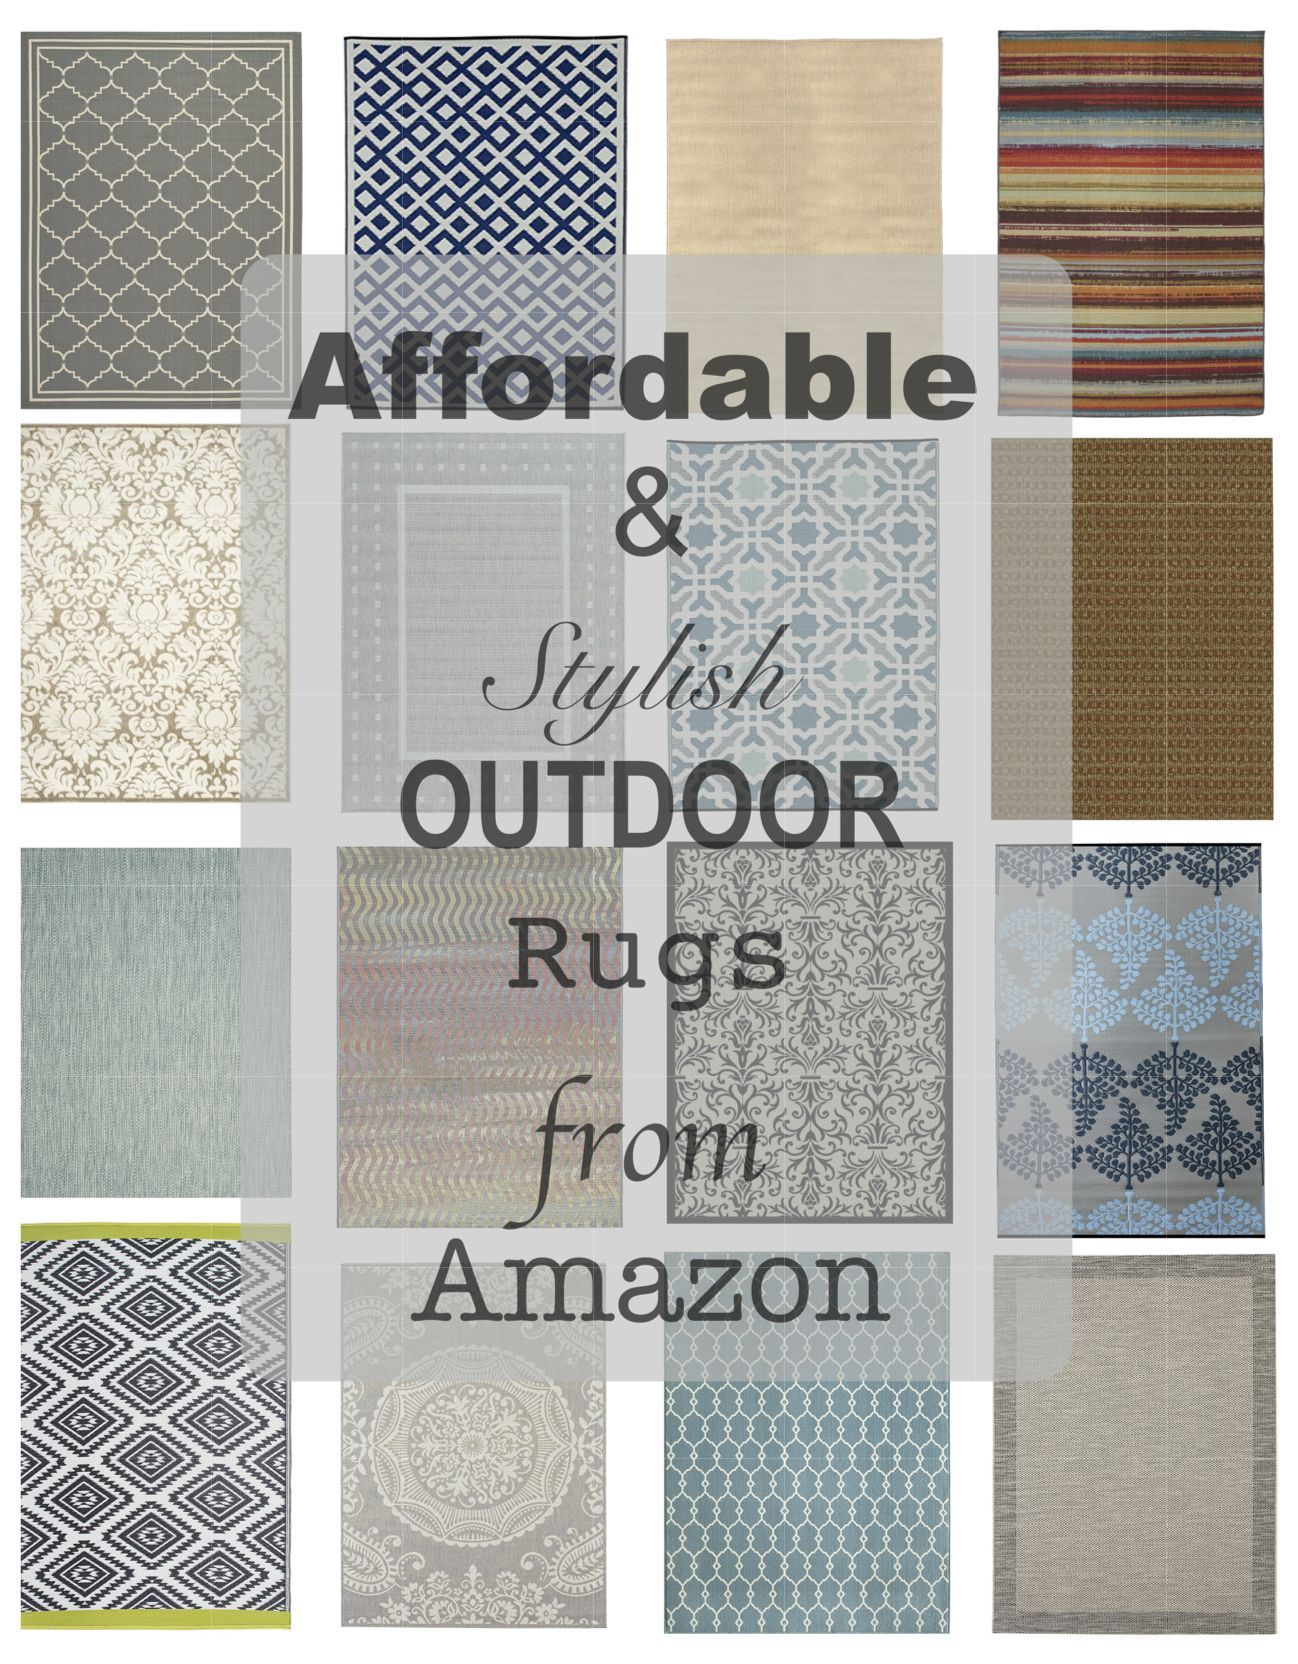 Outdoor Rugs Perfect Rugs For Your Porch Or Patio Porch Rugs Patio Decor Outdoor Living Spa Outdoor Rugs Patio Waterproof Outdoor Rugs Outdoor Rugs Cheap